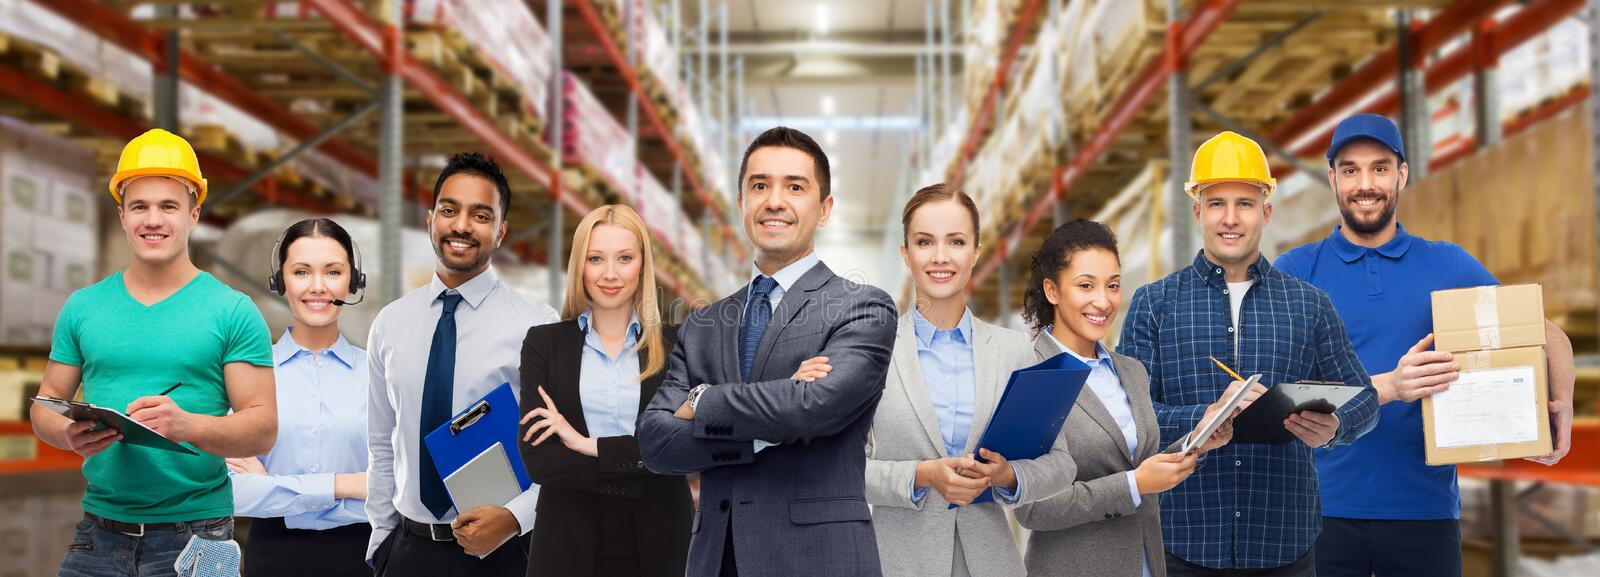 Group of business people and warehouse workers royalty free stock photos